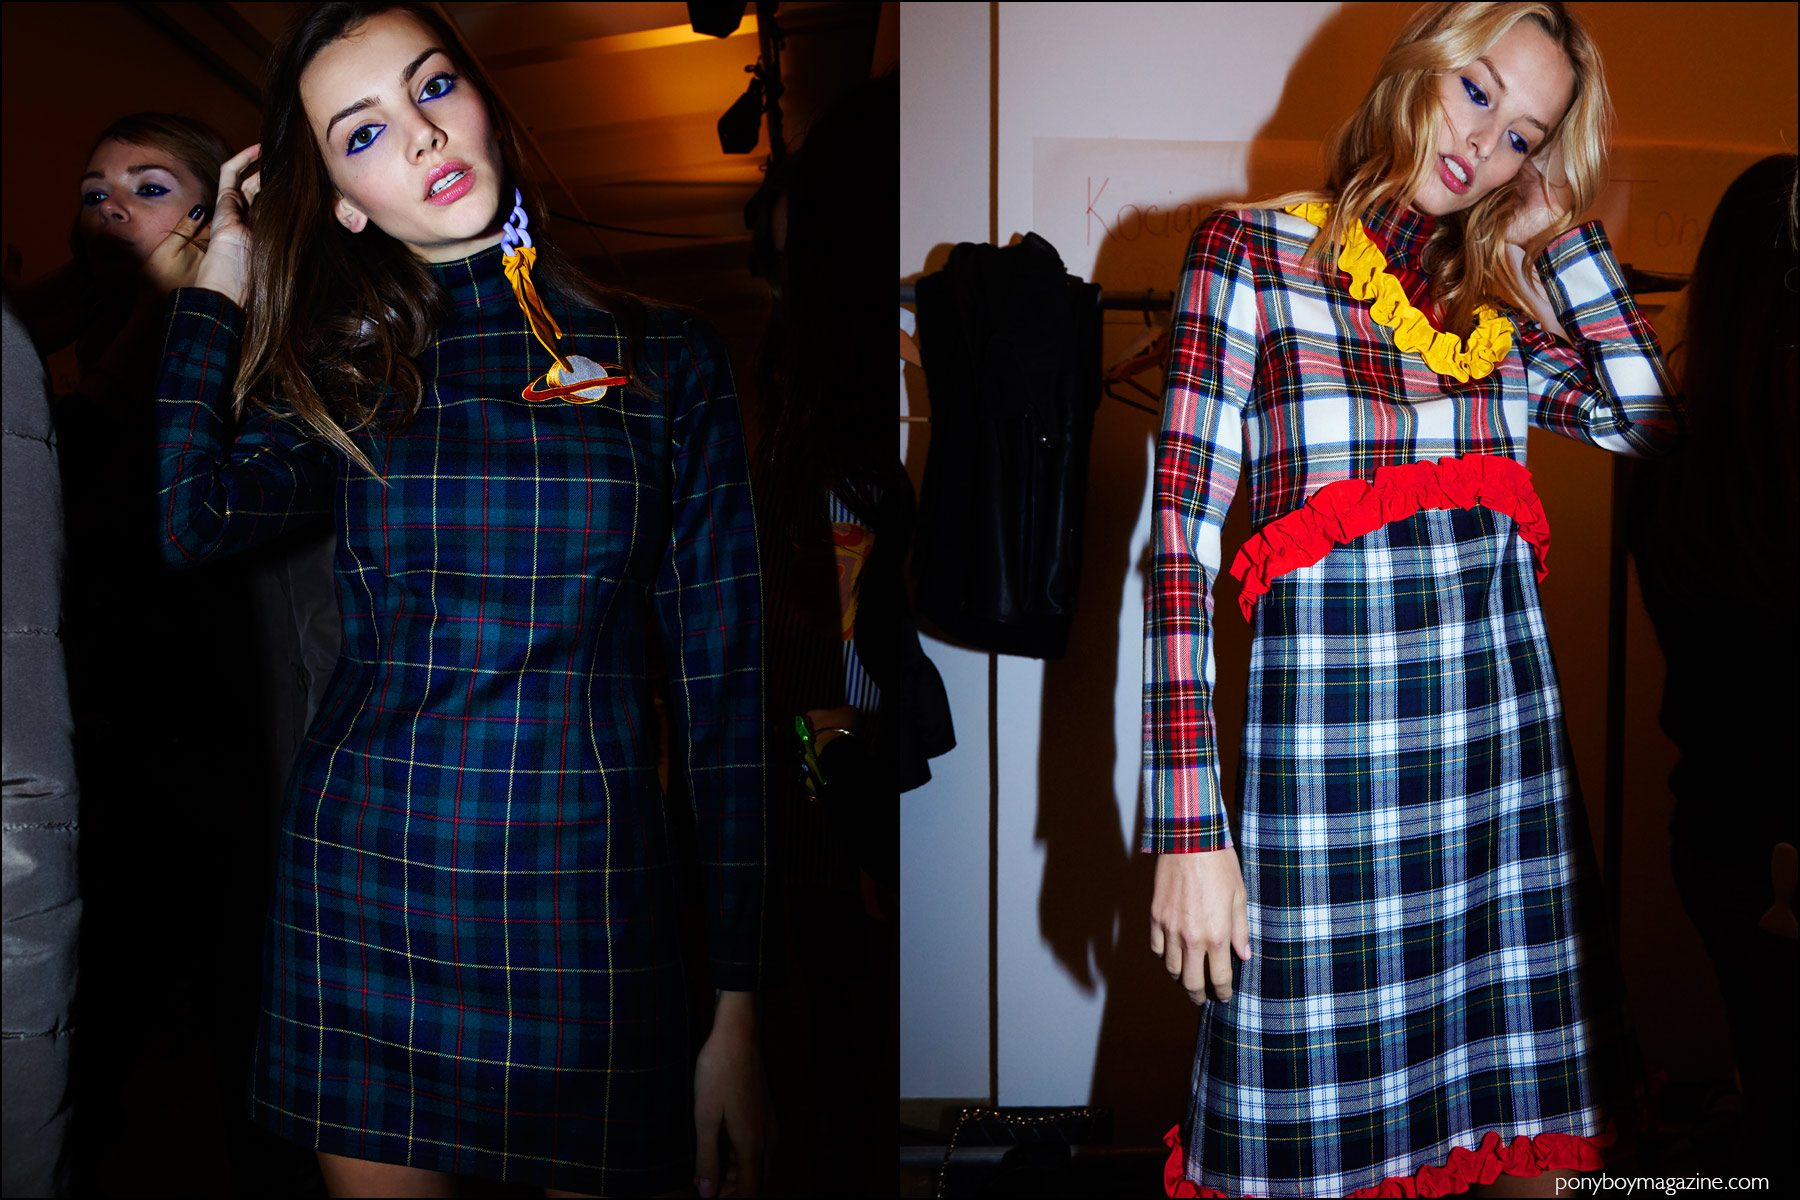 Models in plaid dresses, photographed backstage at the Anna K F/W16 womenswear show. Photography by Alexander Thompson for Ponyboy magazine NY.